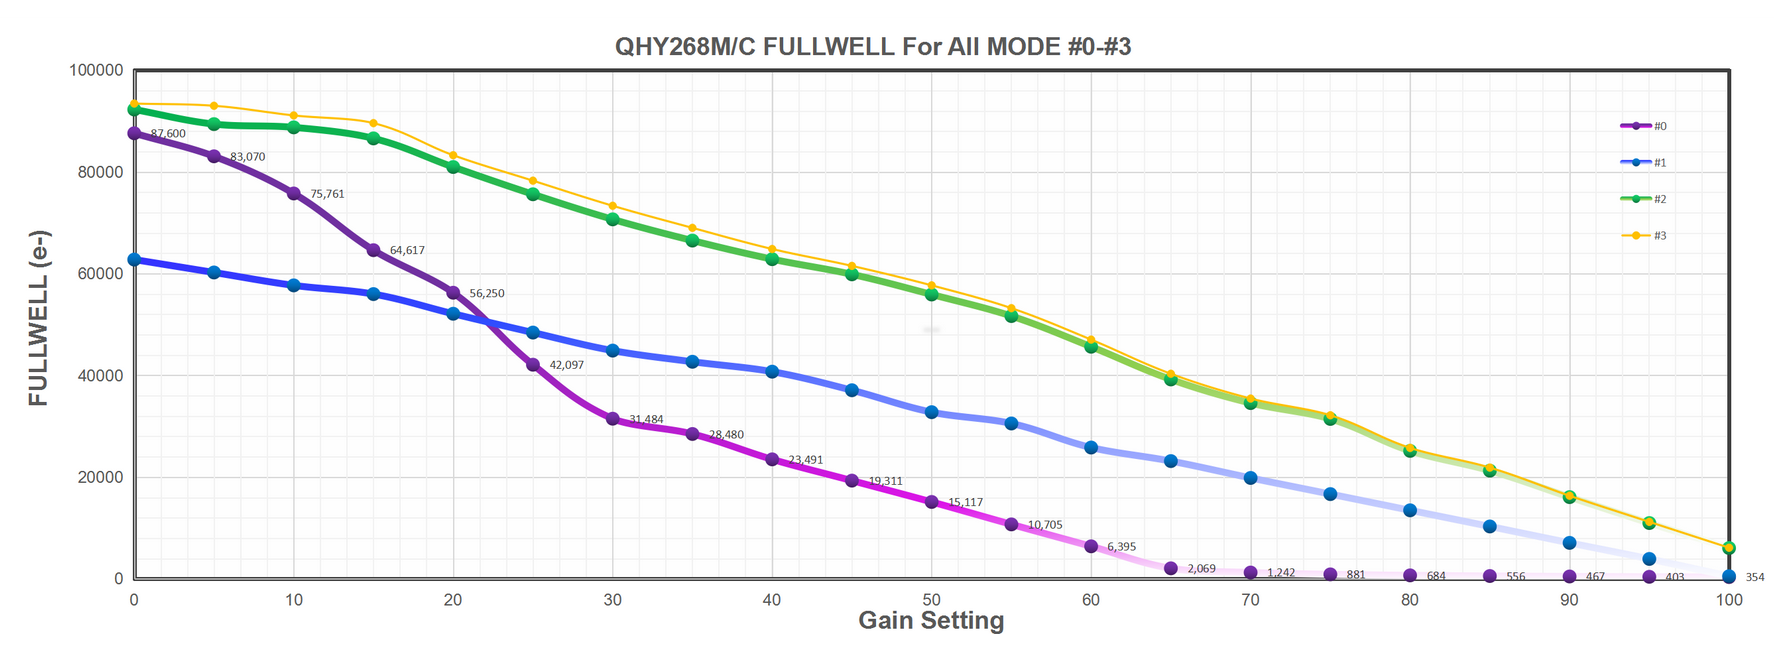 QHY268M/C Fullwell For All Mode